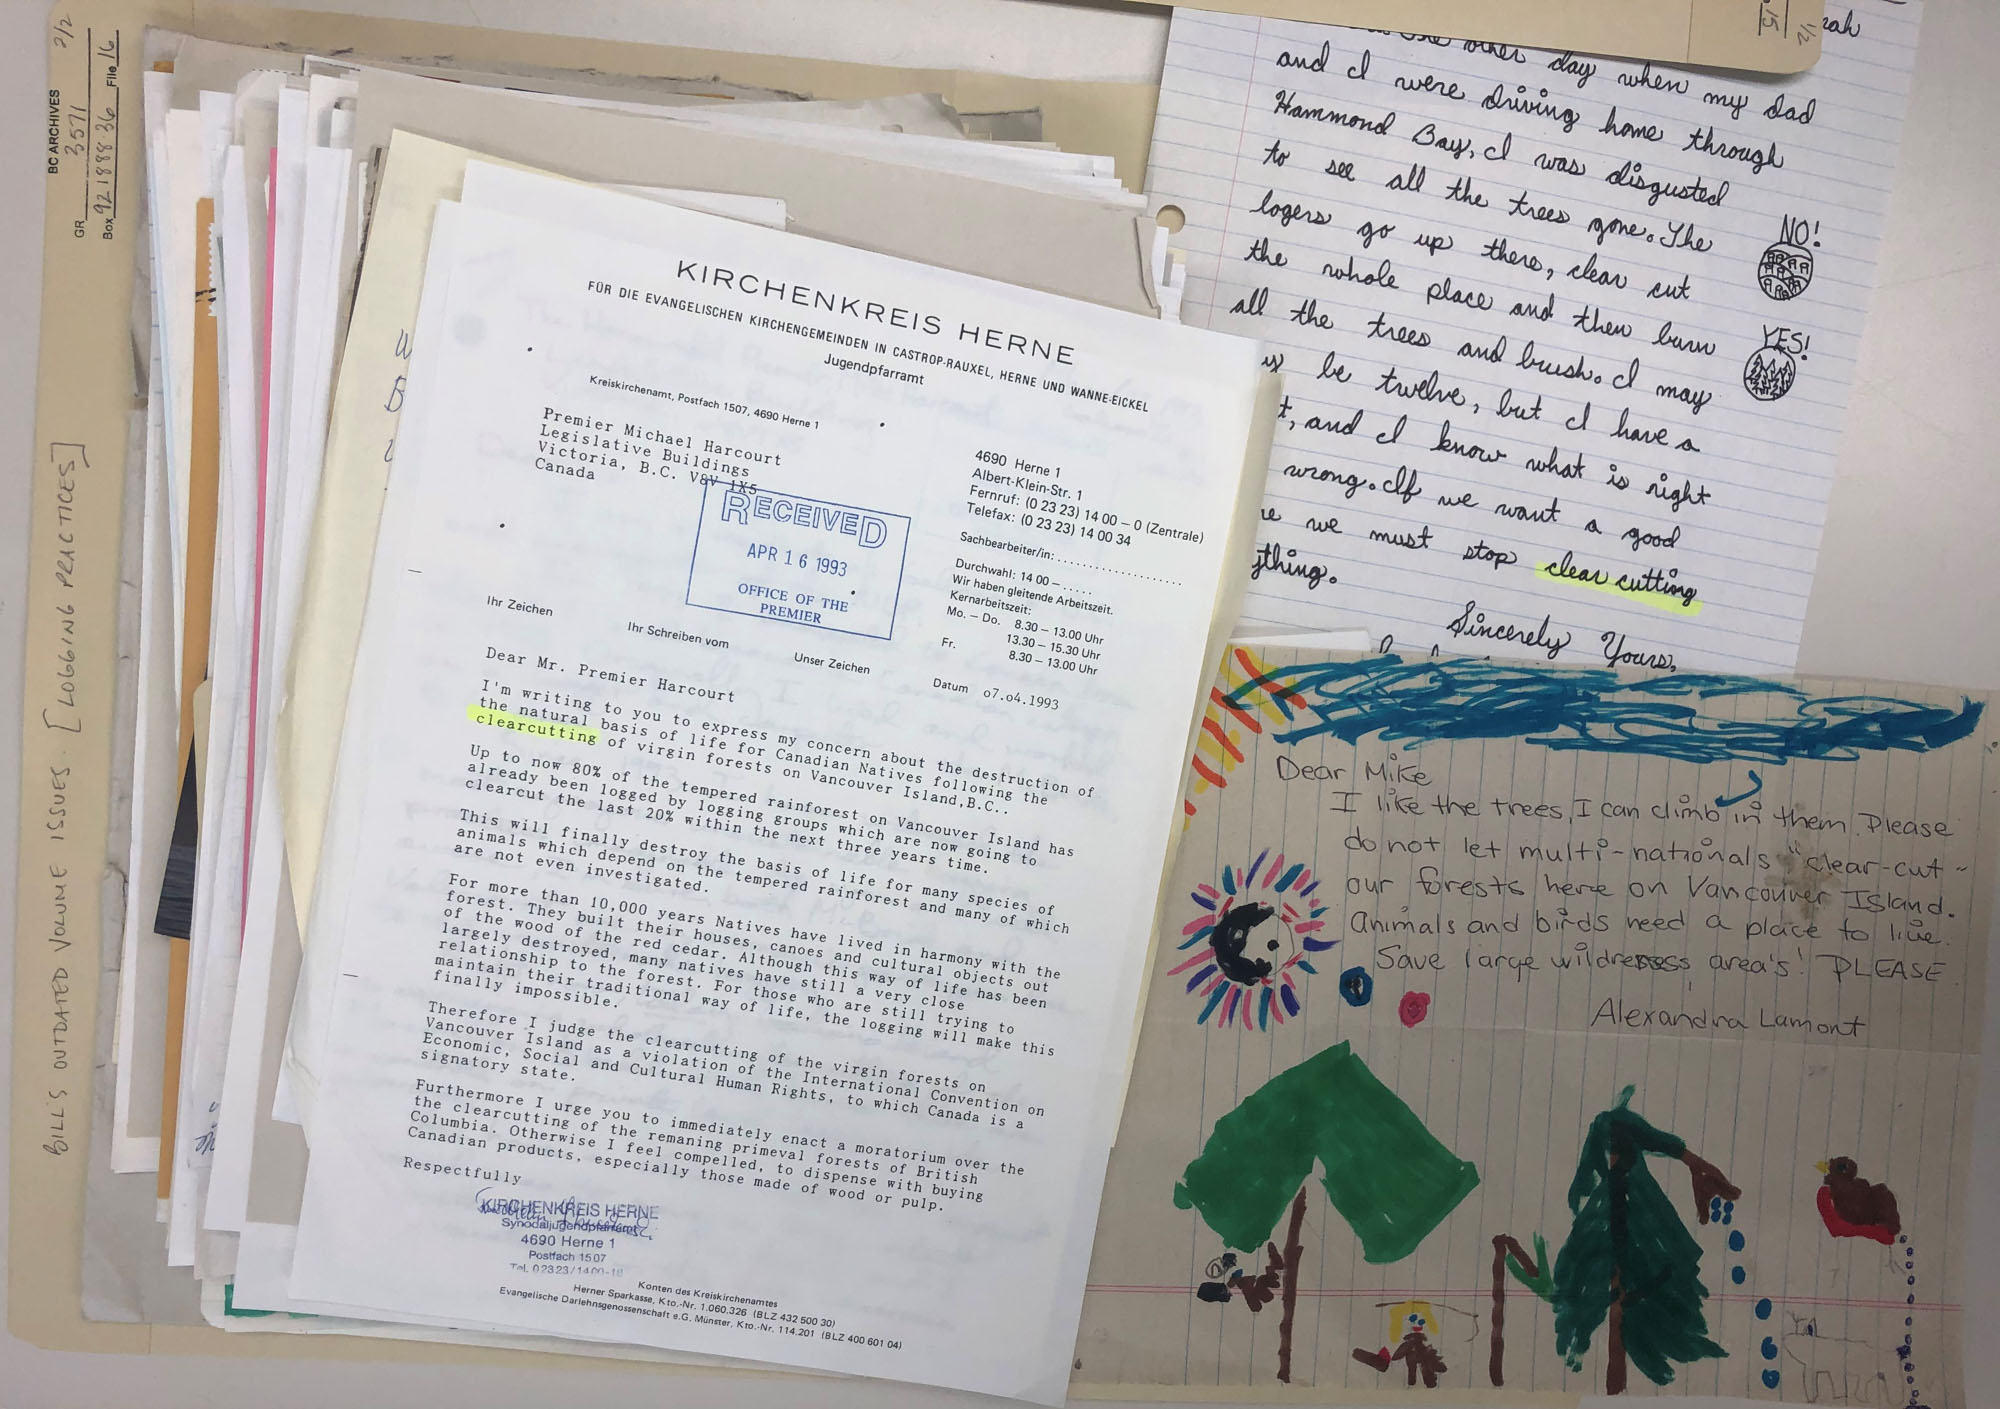 a pile of letters and drawings done by citizens protesting old growth logging